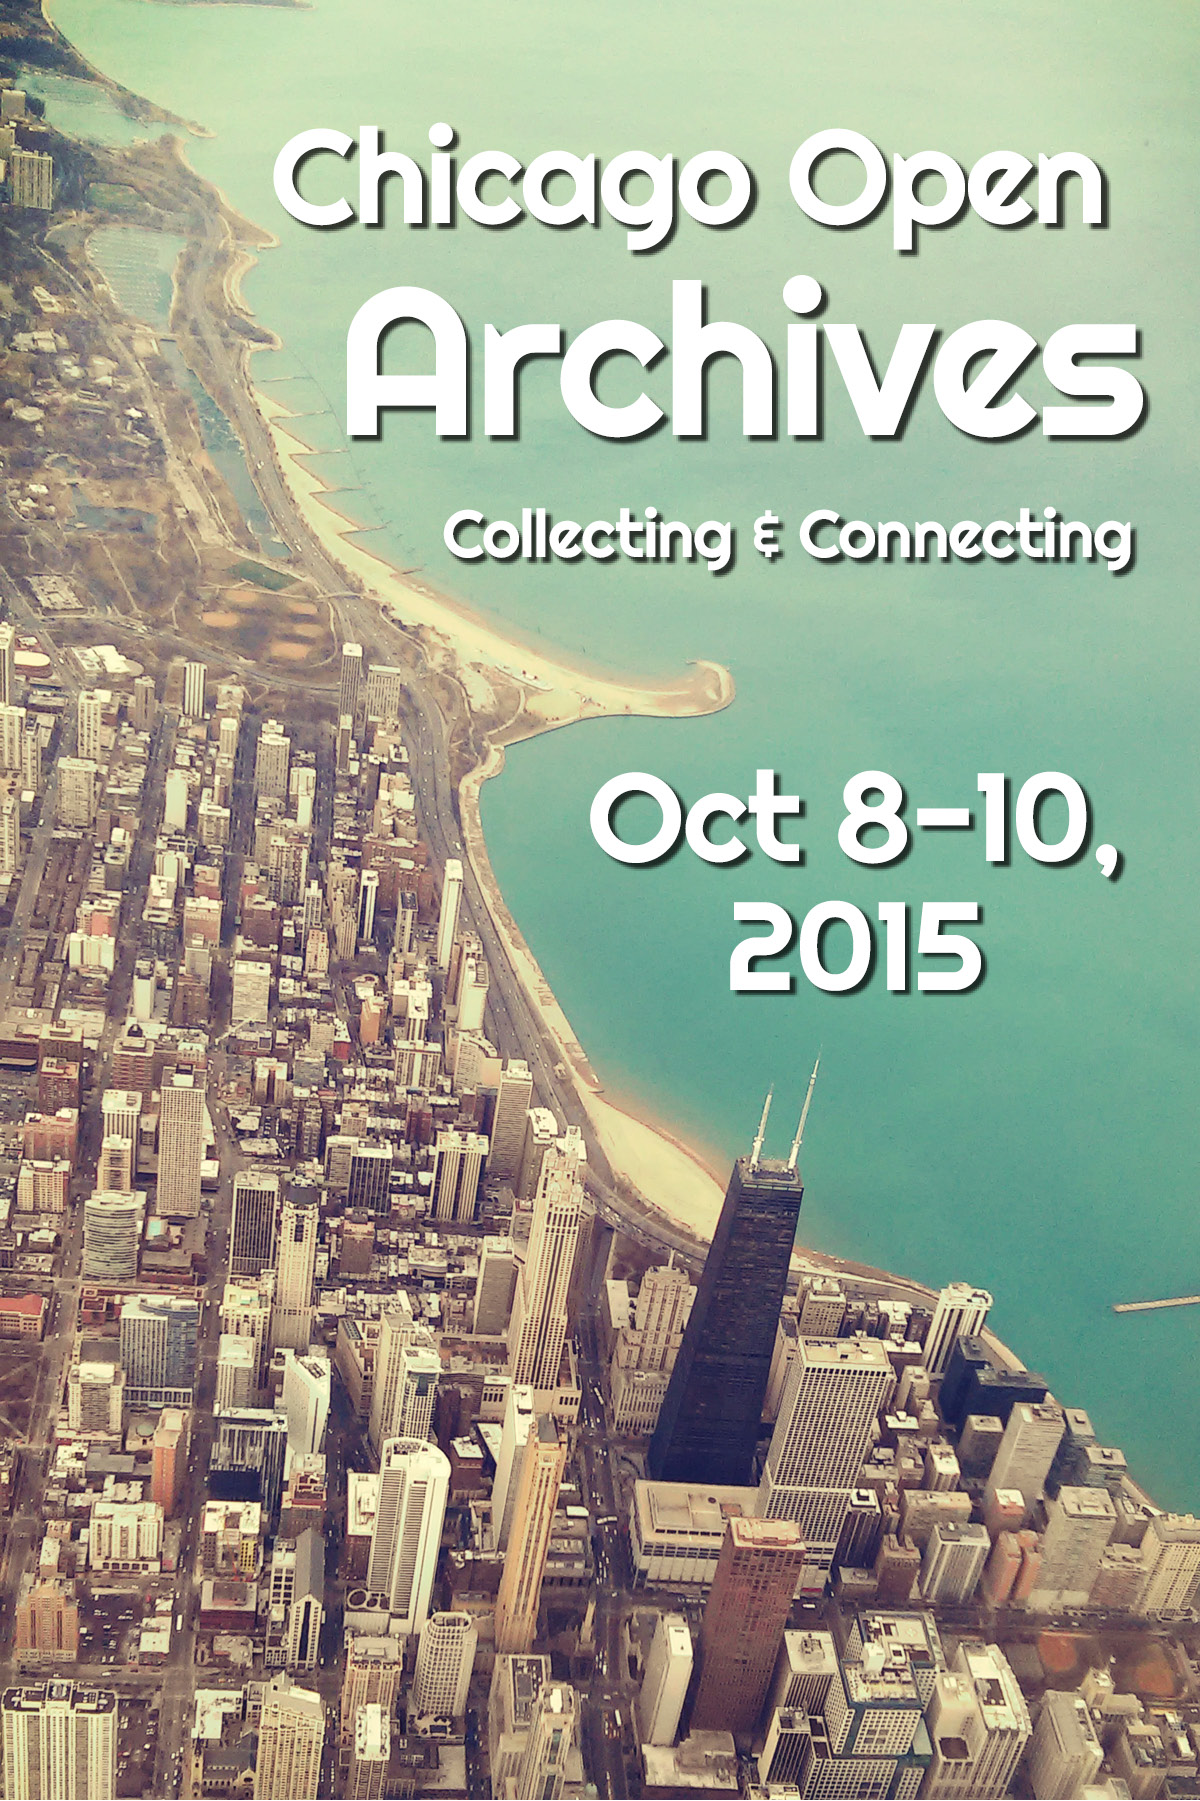 Tour our archive next Friday, October 9th